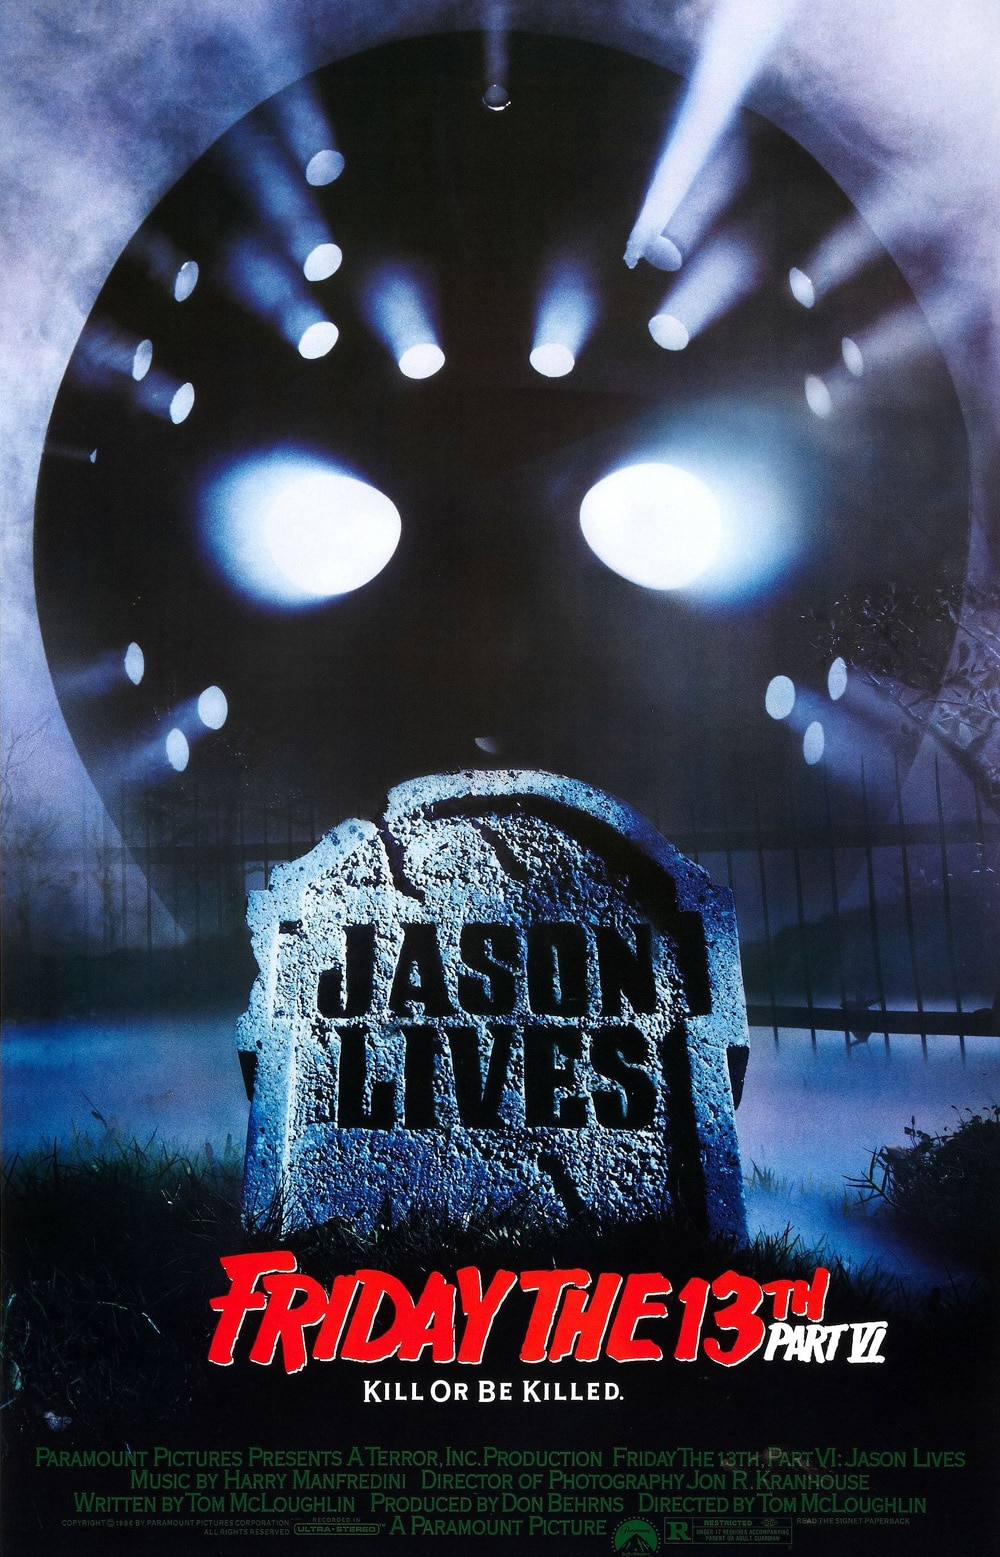 jason lives - Friday the 13th Part VI: Jason Lives - 30th Anniversary Interview with Director Tom McLoughlin